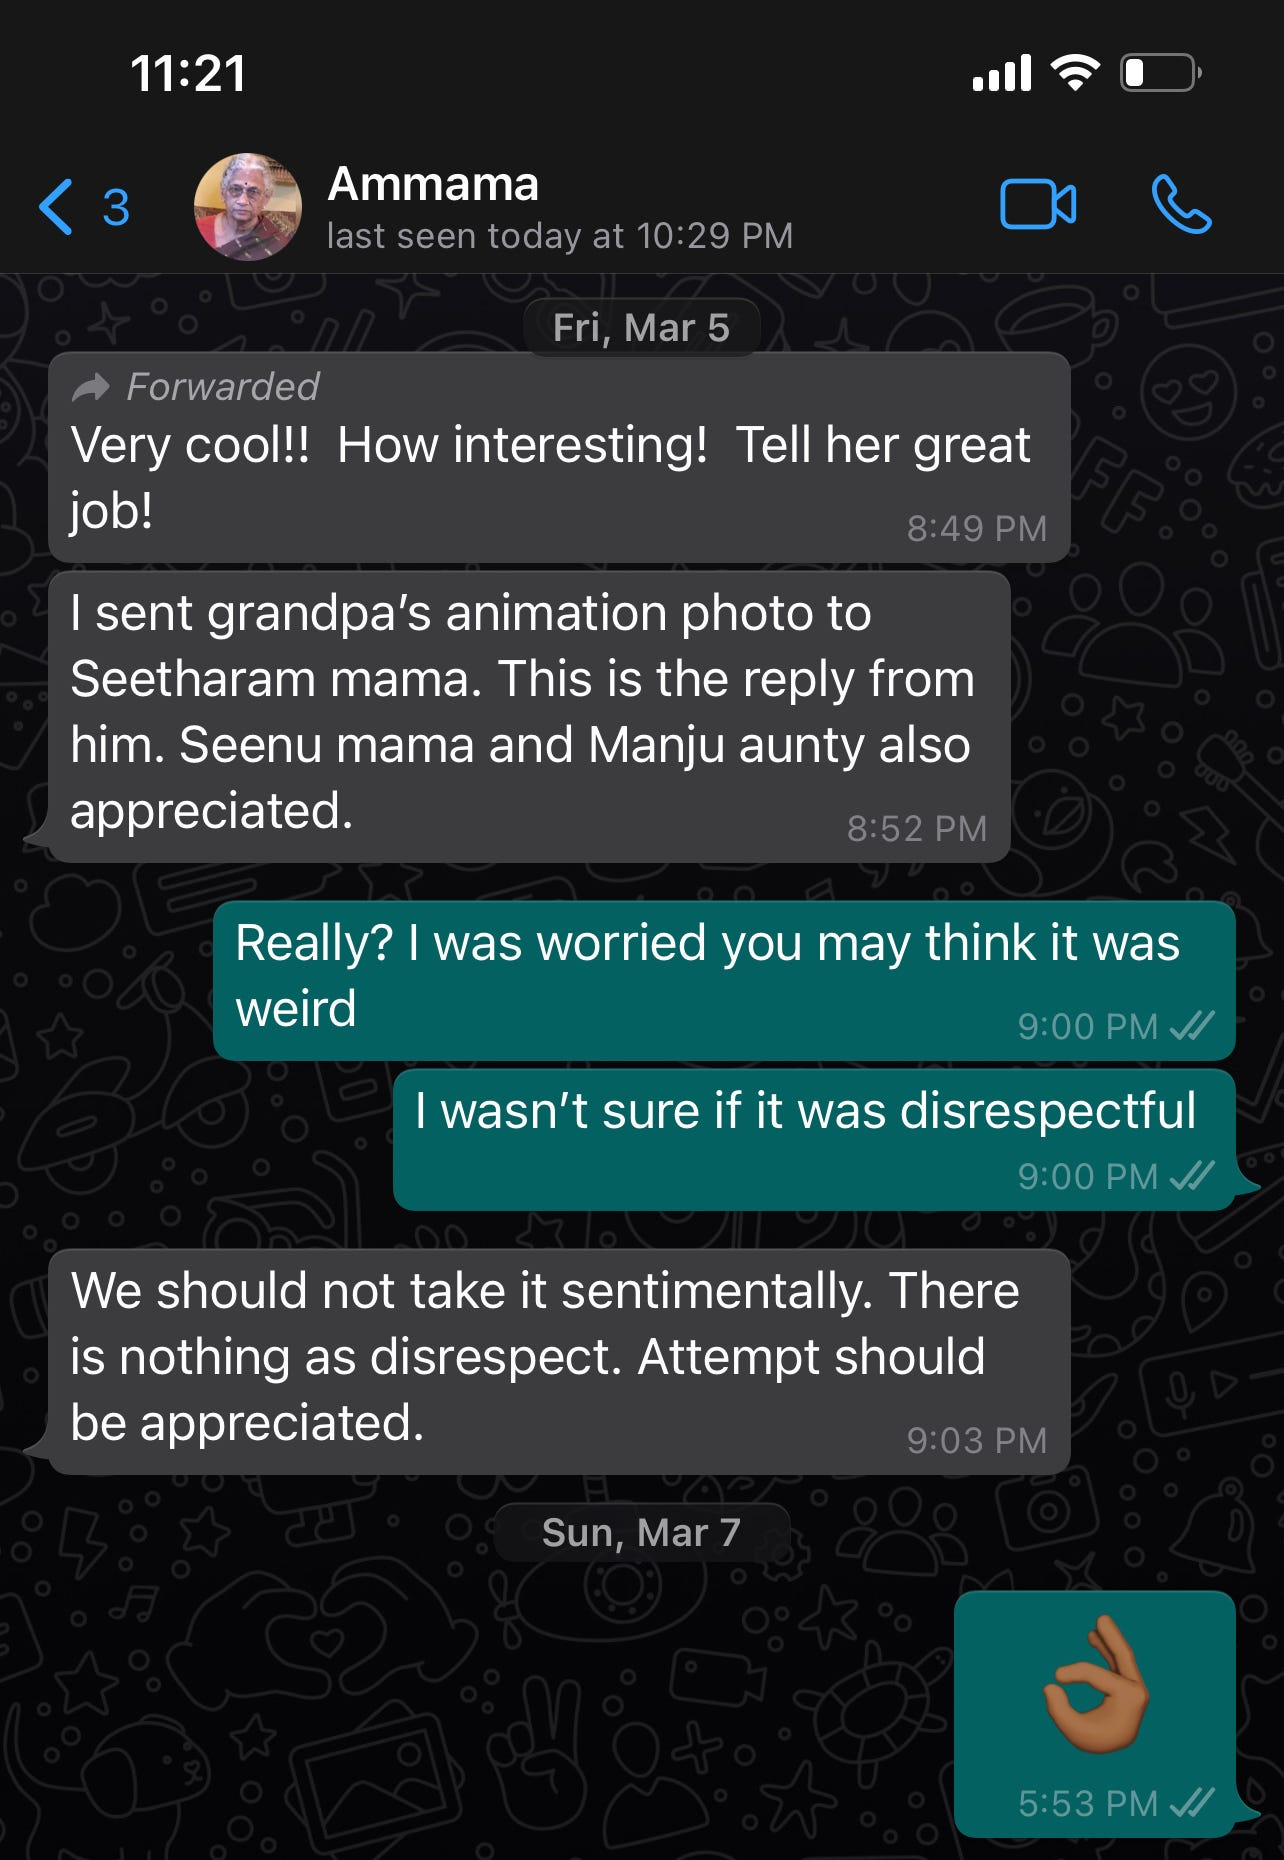 """A whatsapp screenshot of a conversation with my grandmother where I ask her whether she felt the myheritage animation was disrespectful and she responds that she liked it and that """"we should not take it sentimentally. There is nothing as disrespect. Attempt should be appreciated"""""""